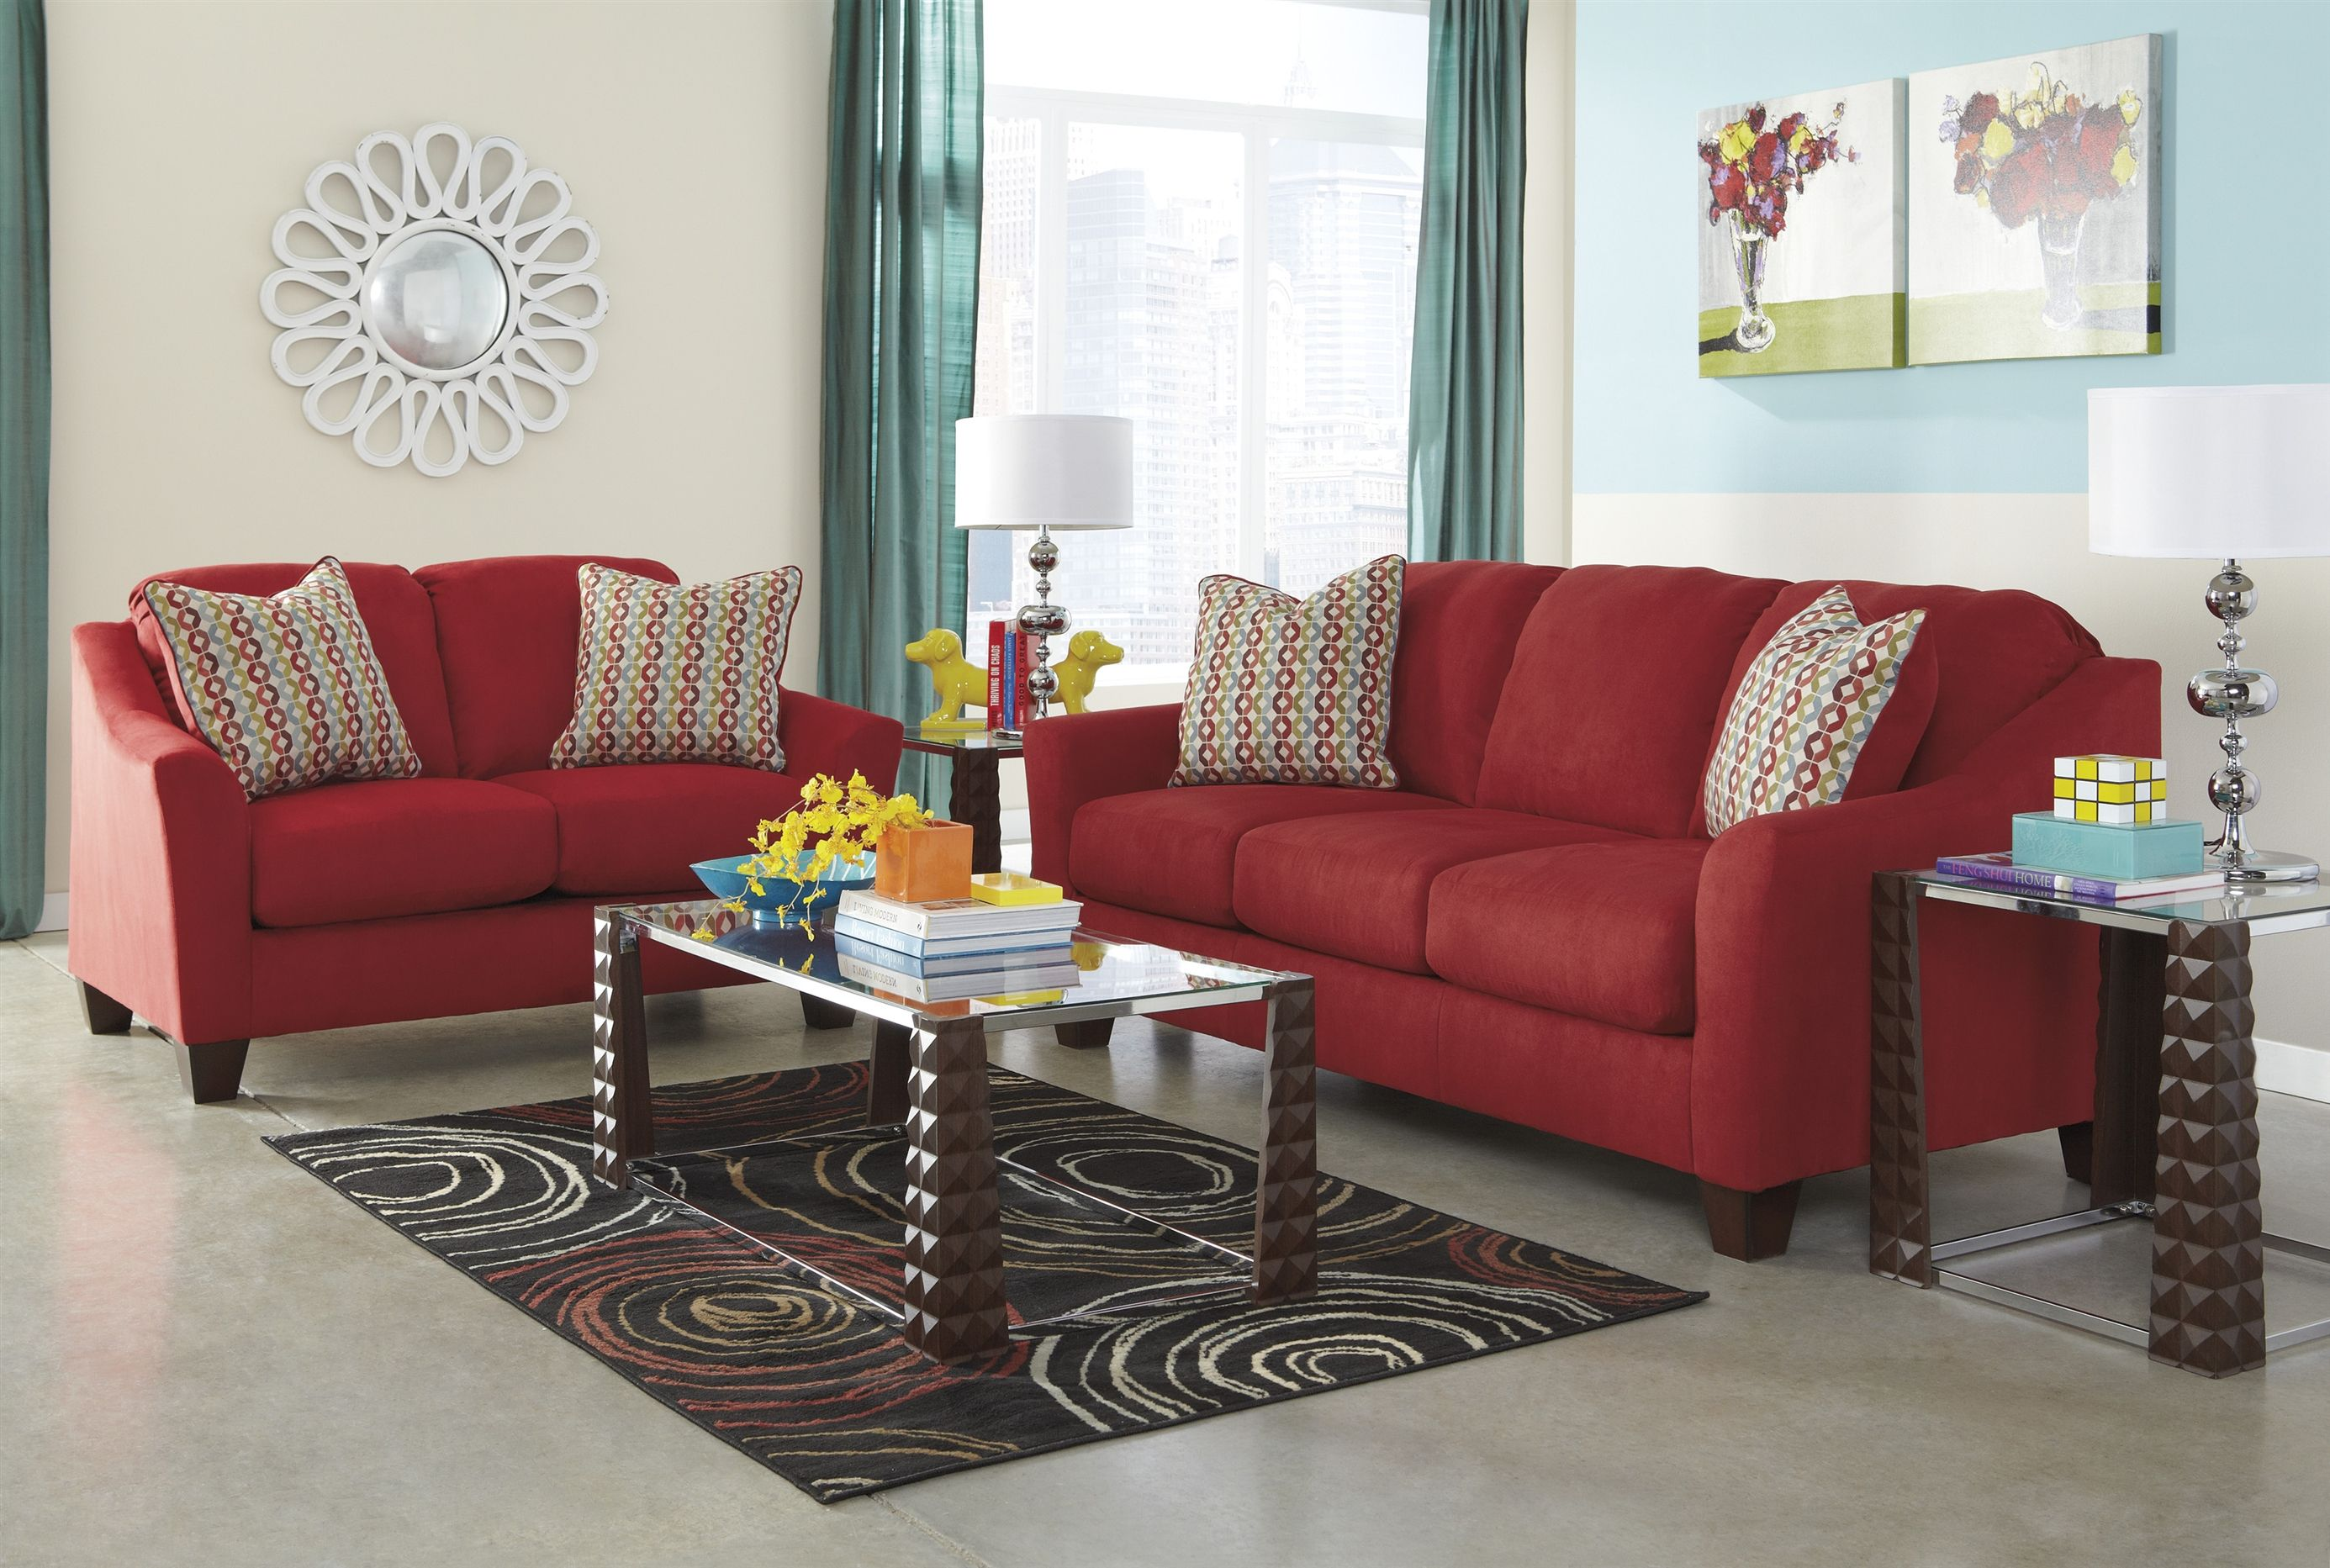 Hannin By Ashley Furniture In Store Now Sofas